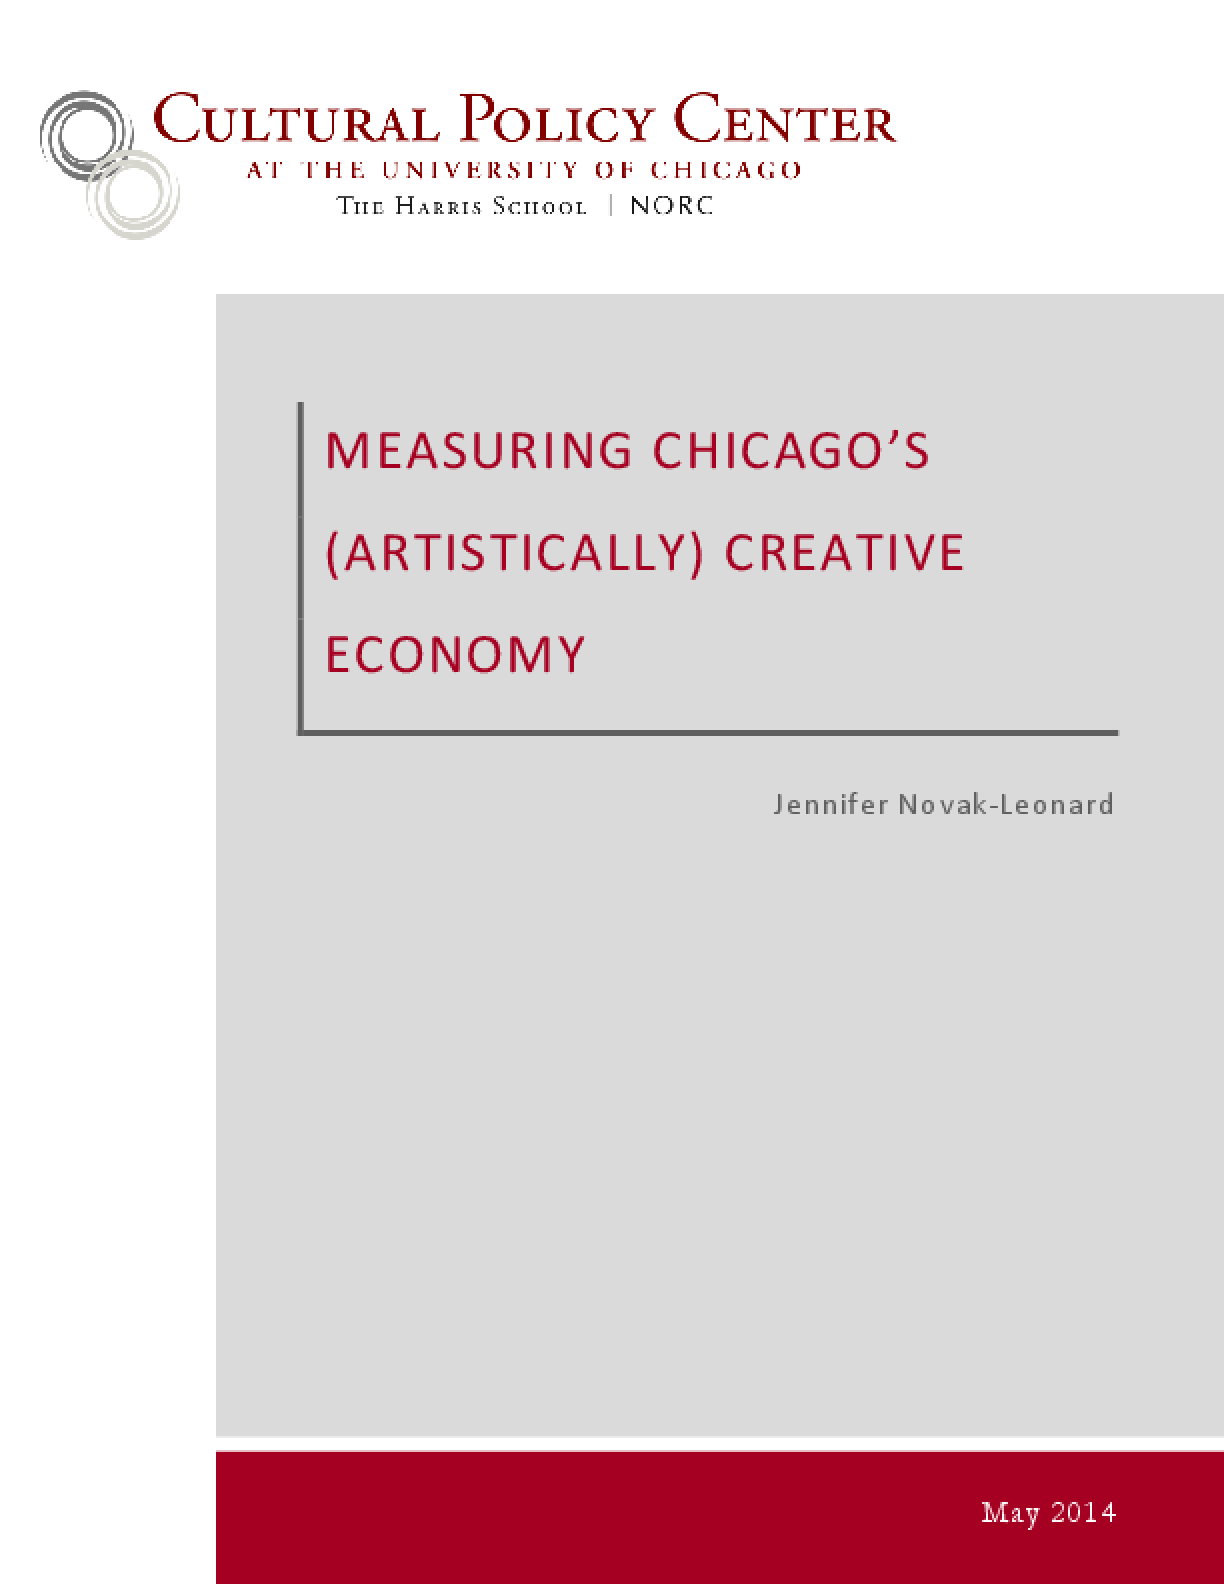 Measuring Chicago's (Artistically) Creative Economy